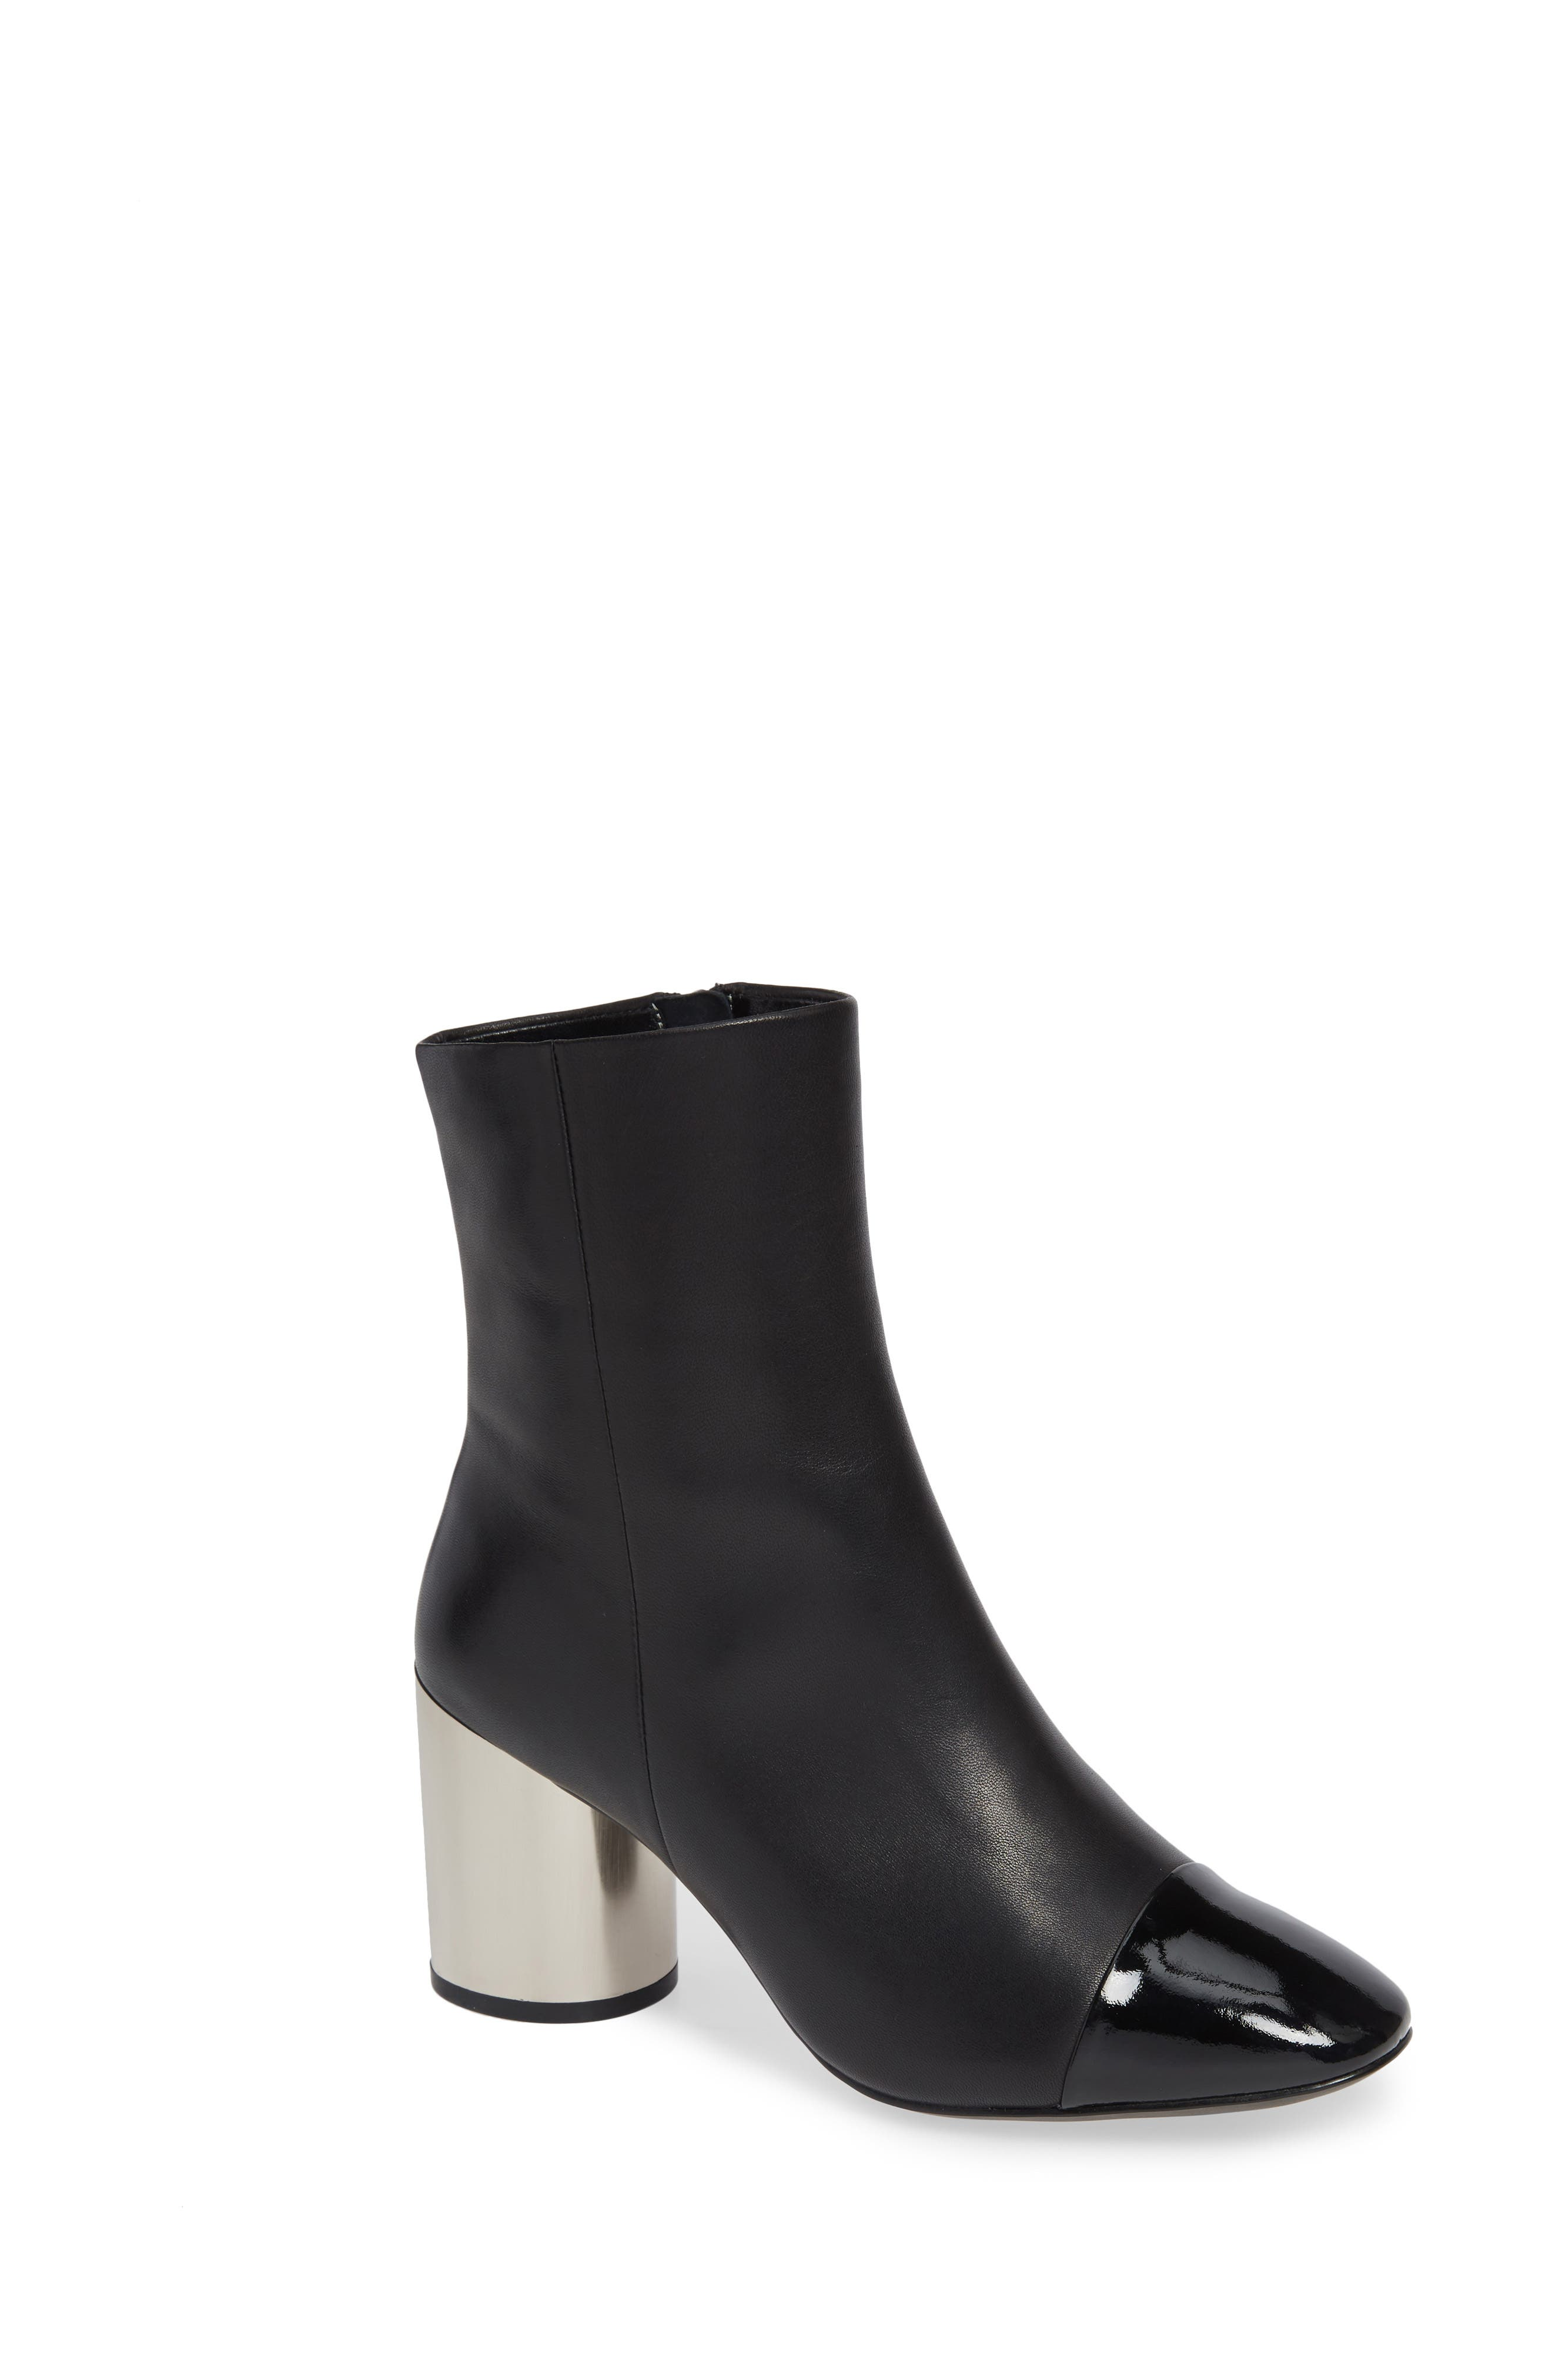 Stella Cap Toe Bootie,                             Main thumbnail 1, color,                             BLACK MATTE LEATHER